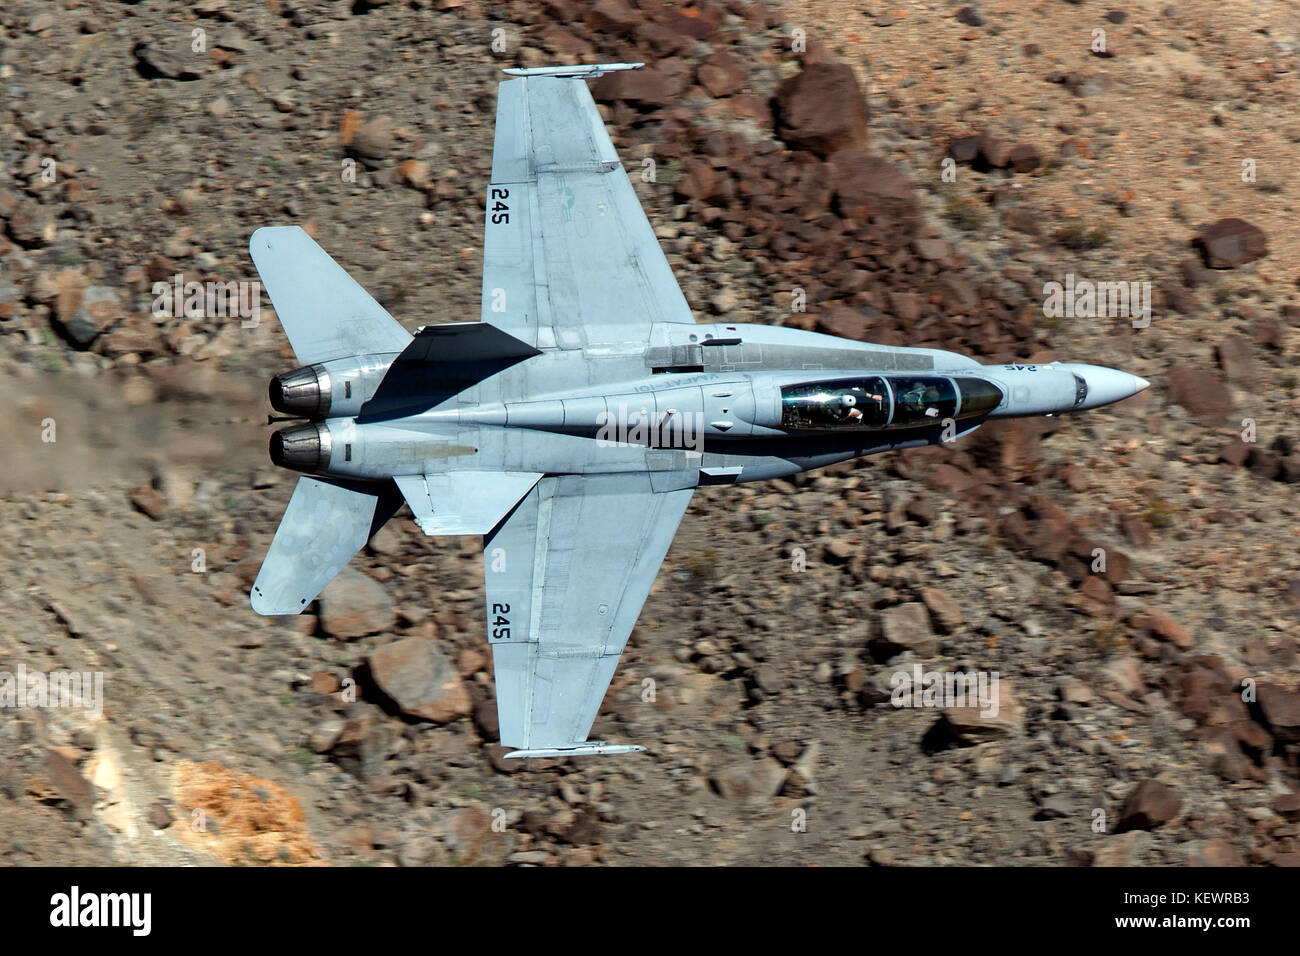 United States Marines McDonnell Douglas F/A-18C Hornet from the VMFAT-101 Sharpshooters squadron, Marine Corps Air - Stock Image